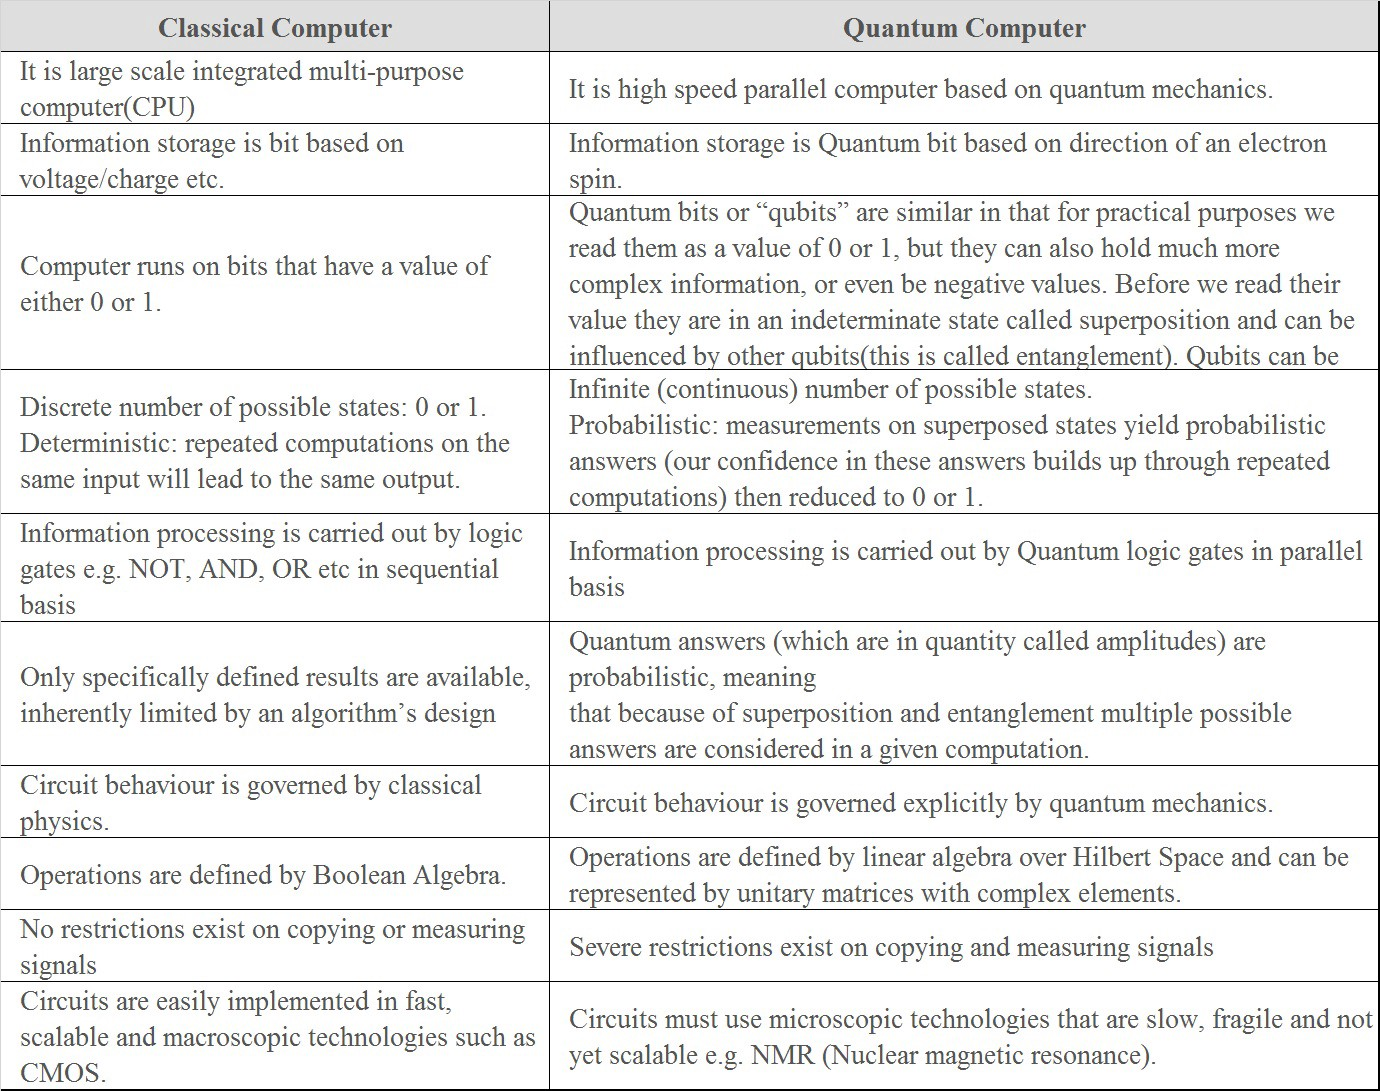 10 Differences between Classical computing and Quantum computing